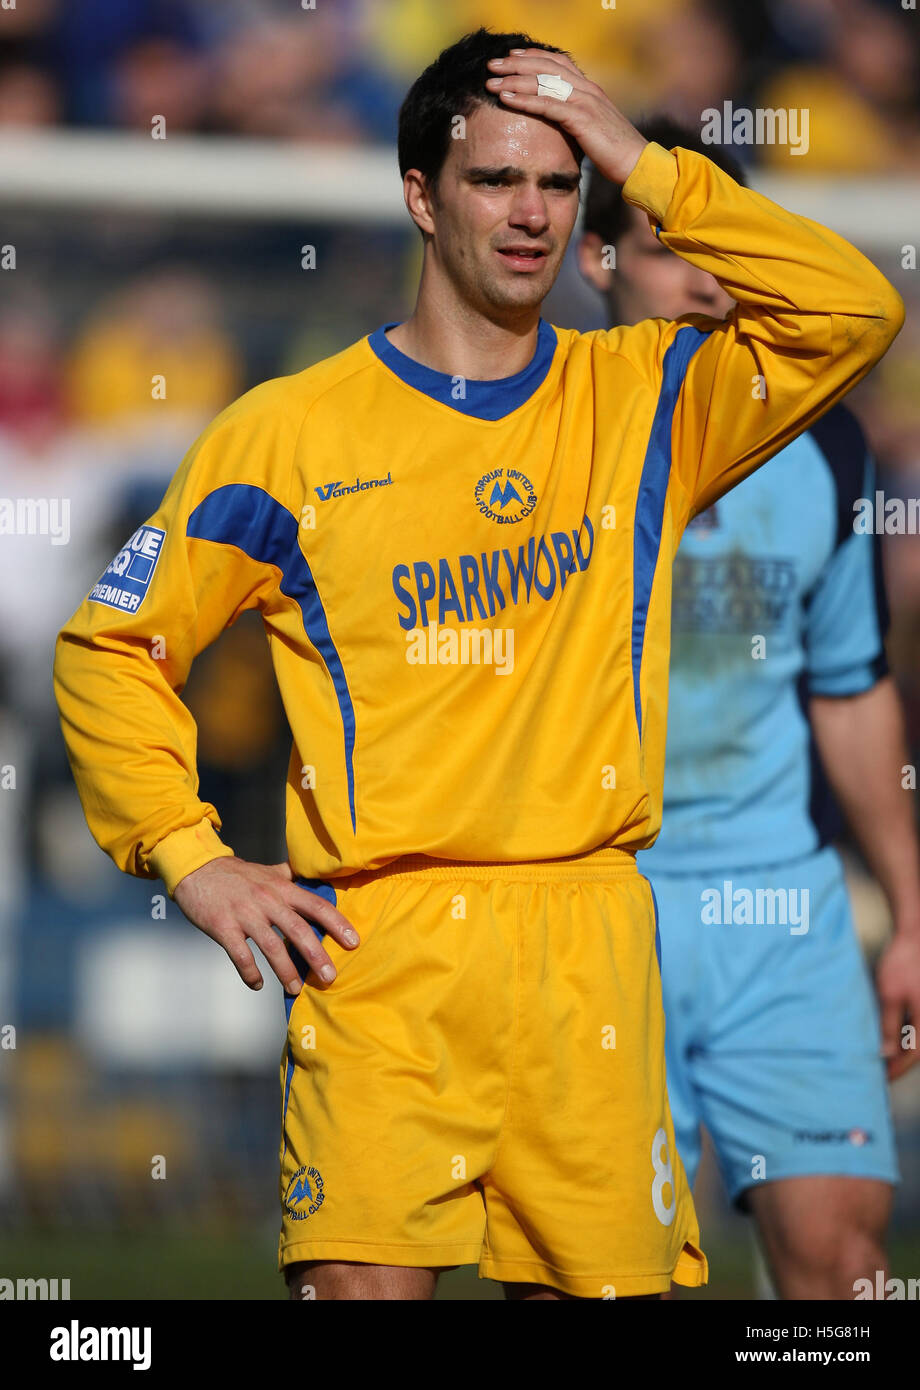 Tim Sills of Torquay - Grays Athletic vs Torquay United - Blue Square Premier at the New Rec - 01/03/08 Stock Photo